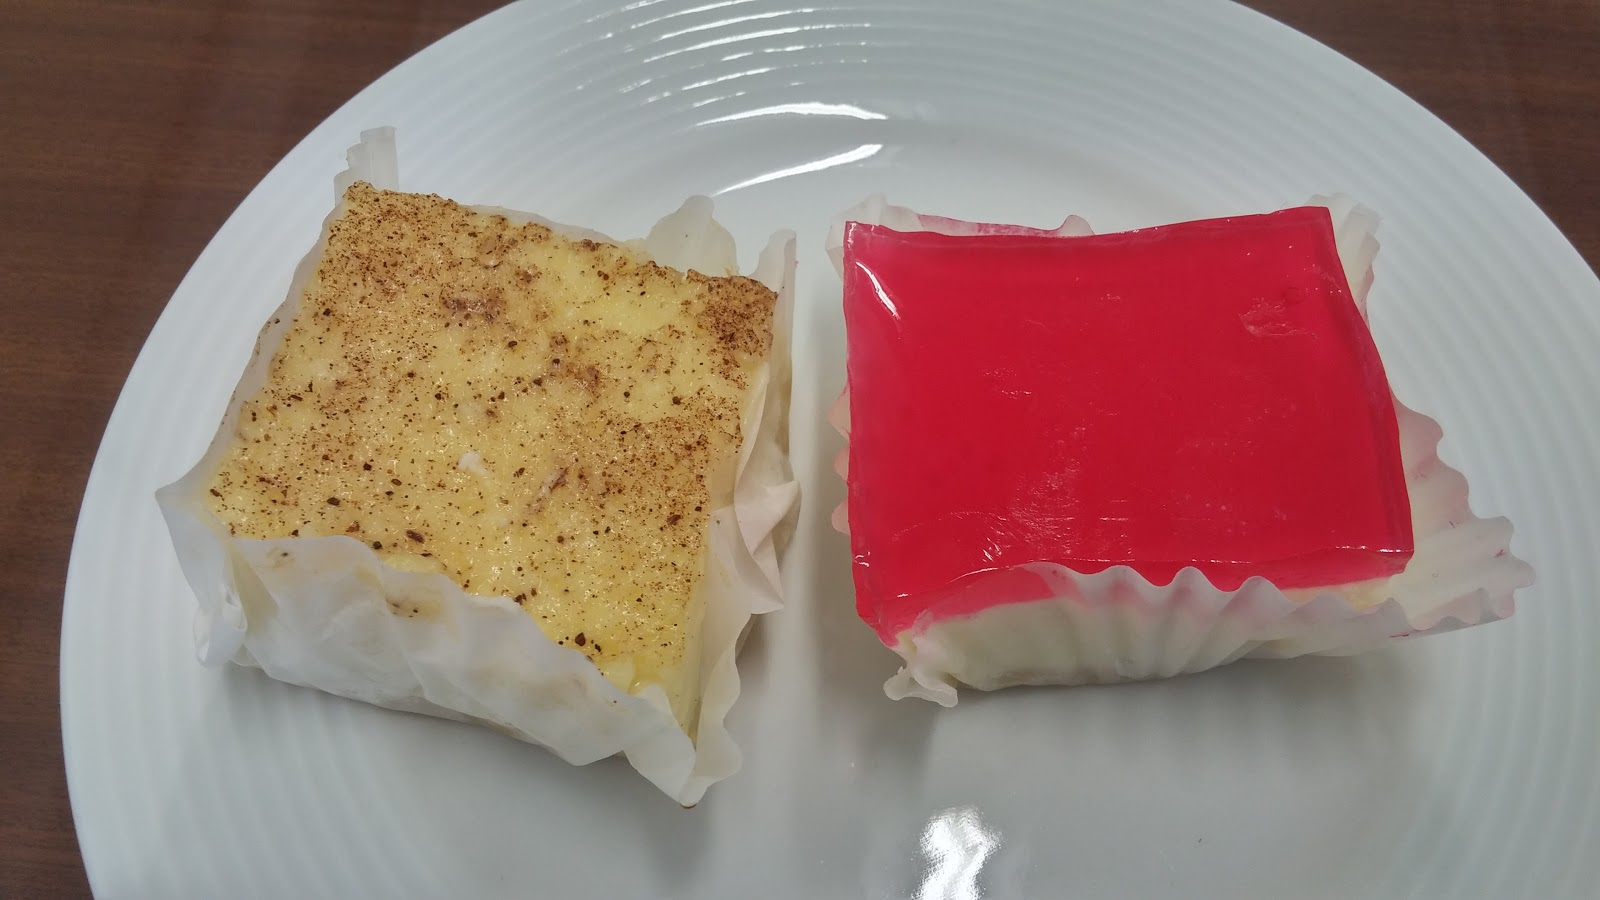 No Bake Easy Cheesecake with Jelly Topping